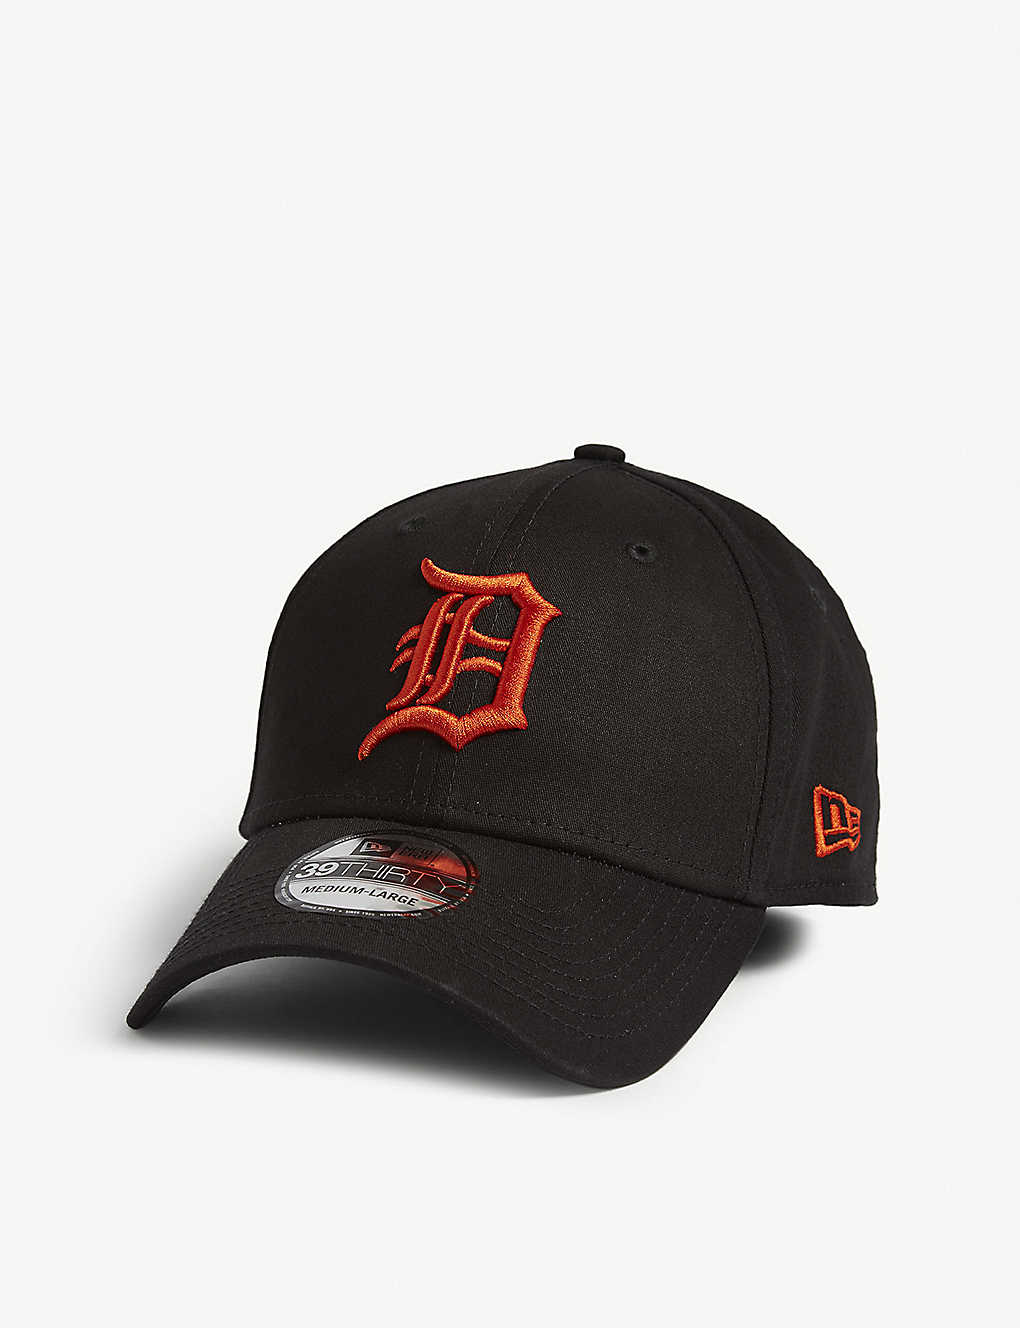 NEW ERA - Detroit Tigers 39THIRTY baseball cap  a56cd7dbb